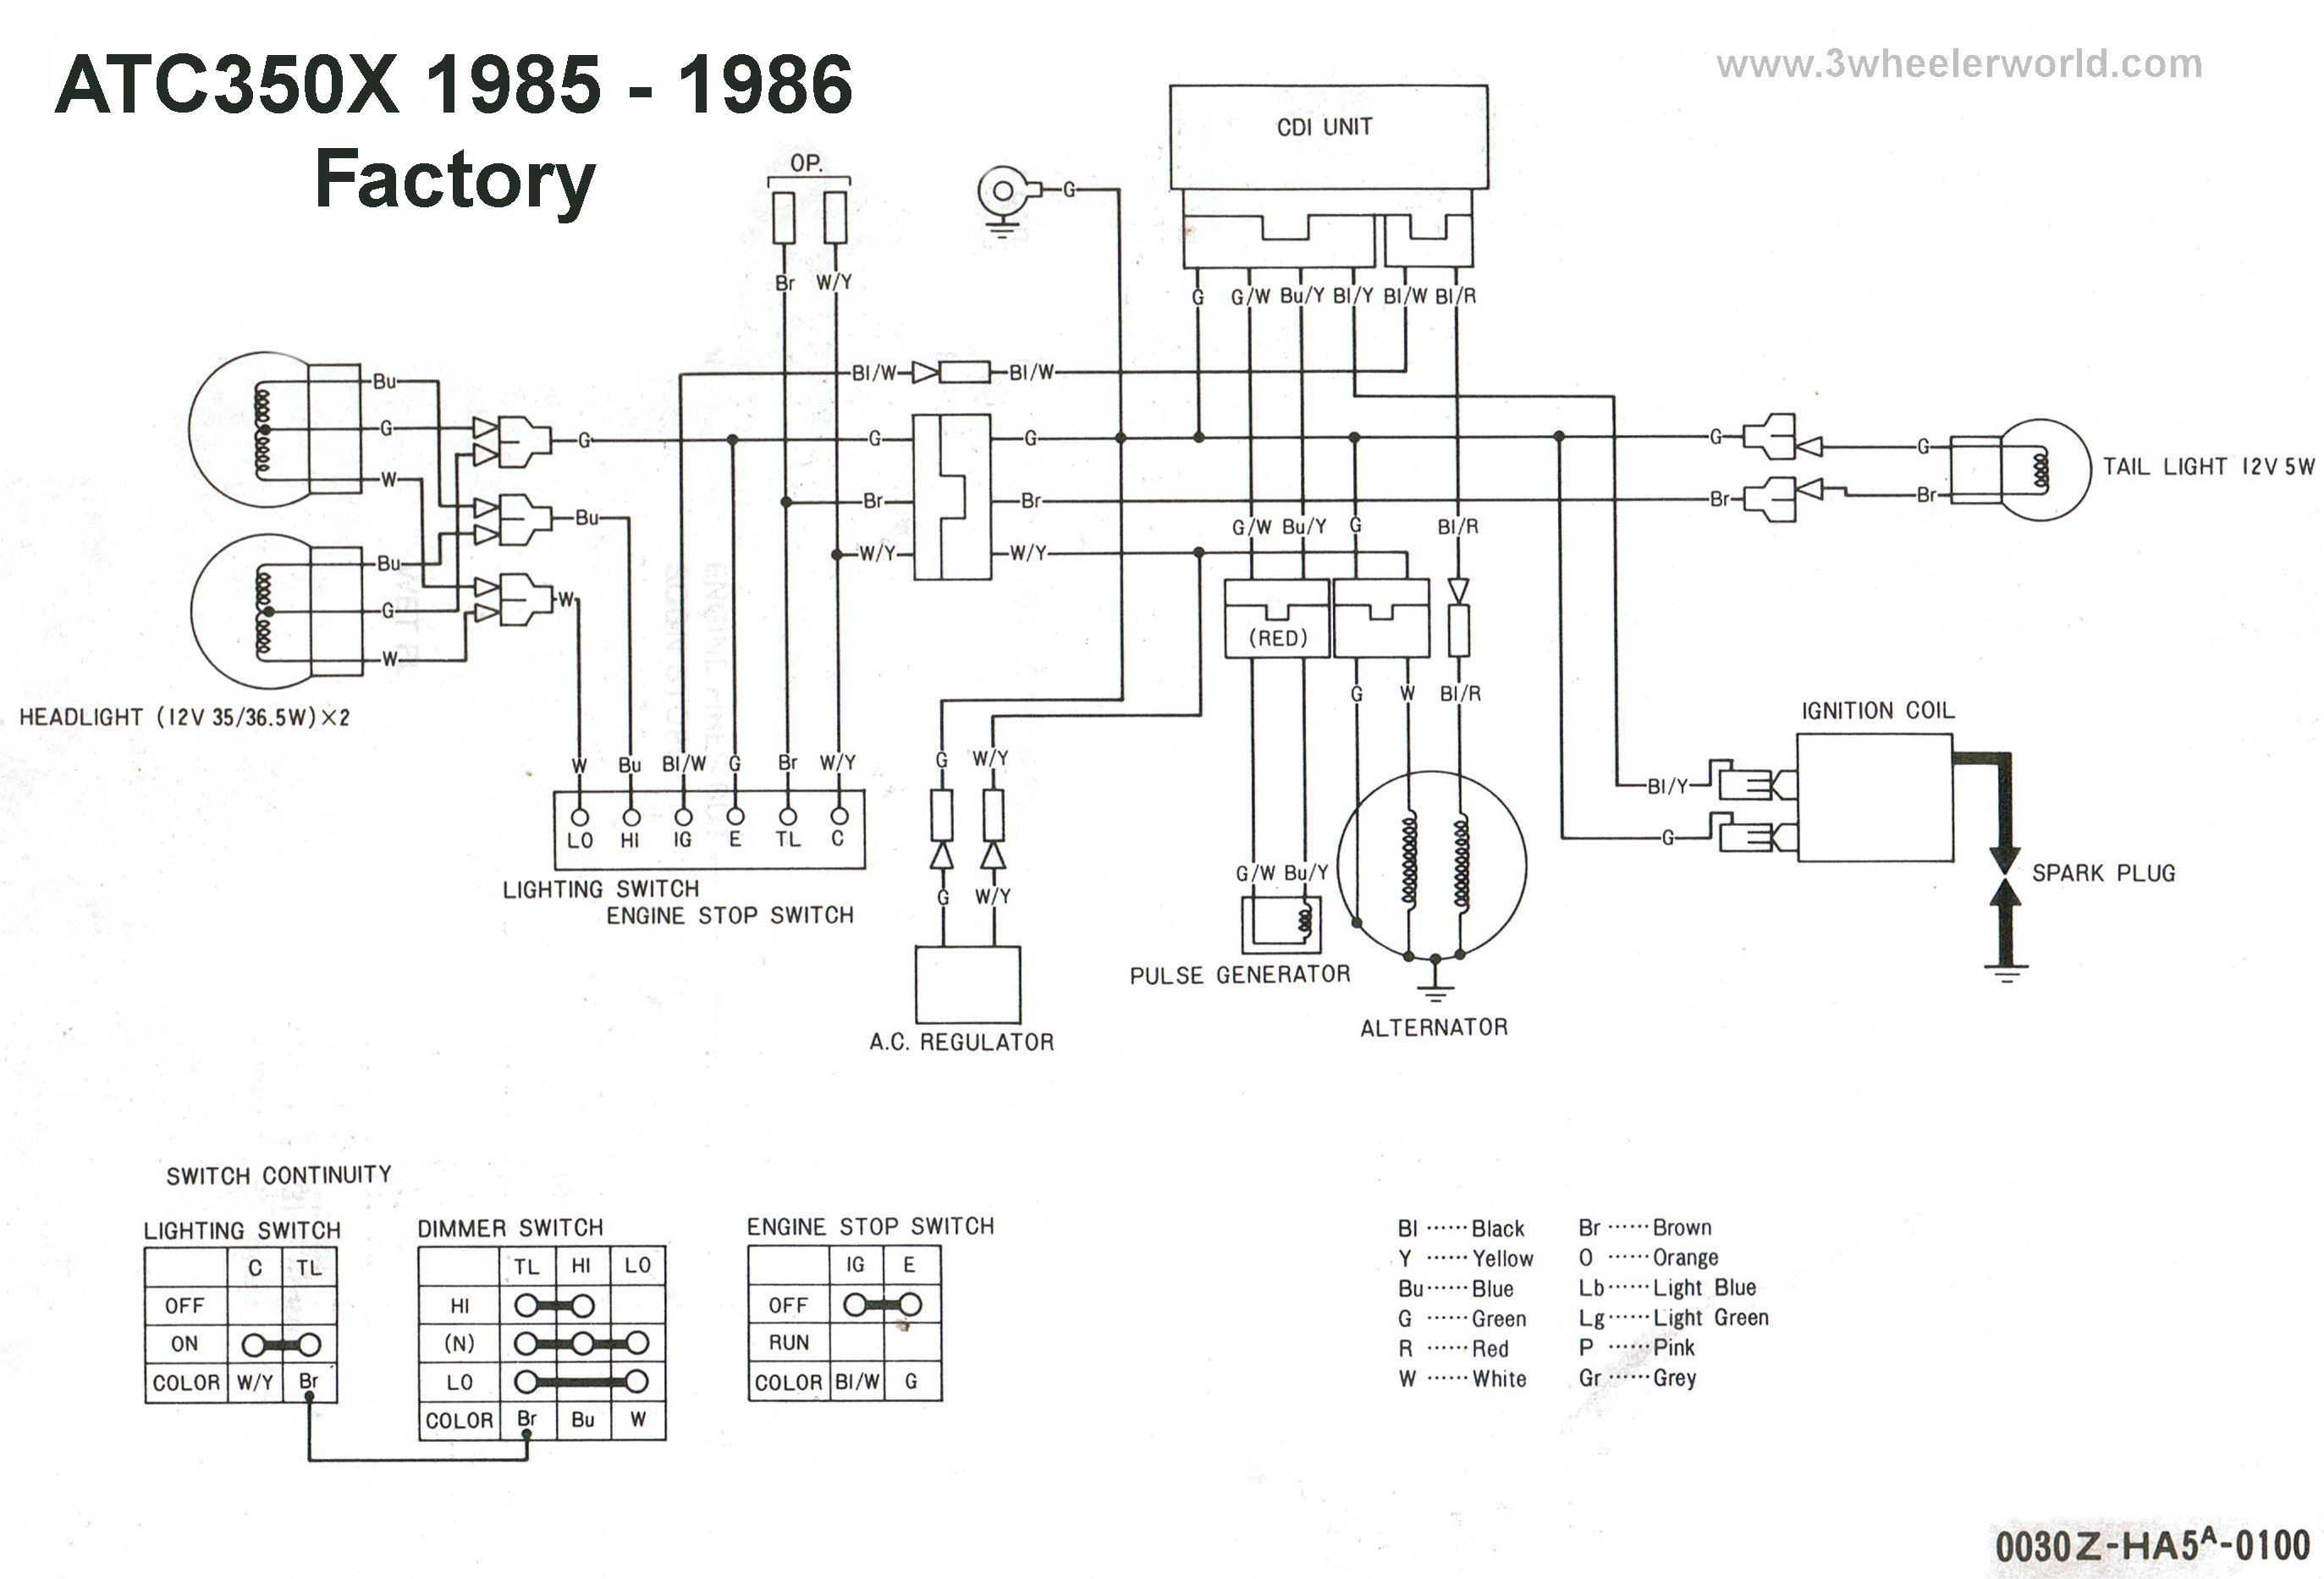 ATC350Xx85Thru86 98 honda fourtrax diagrams wiring diagram simonand trx350 wiring diagram 1987 at aneh.co